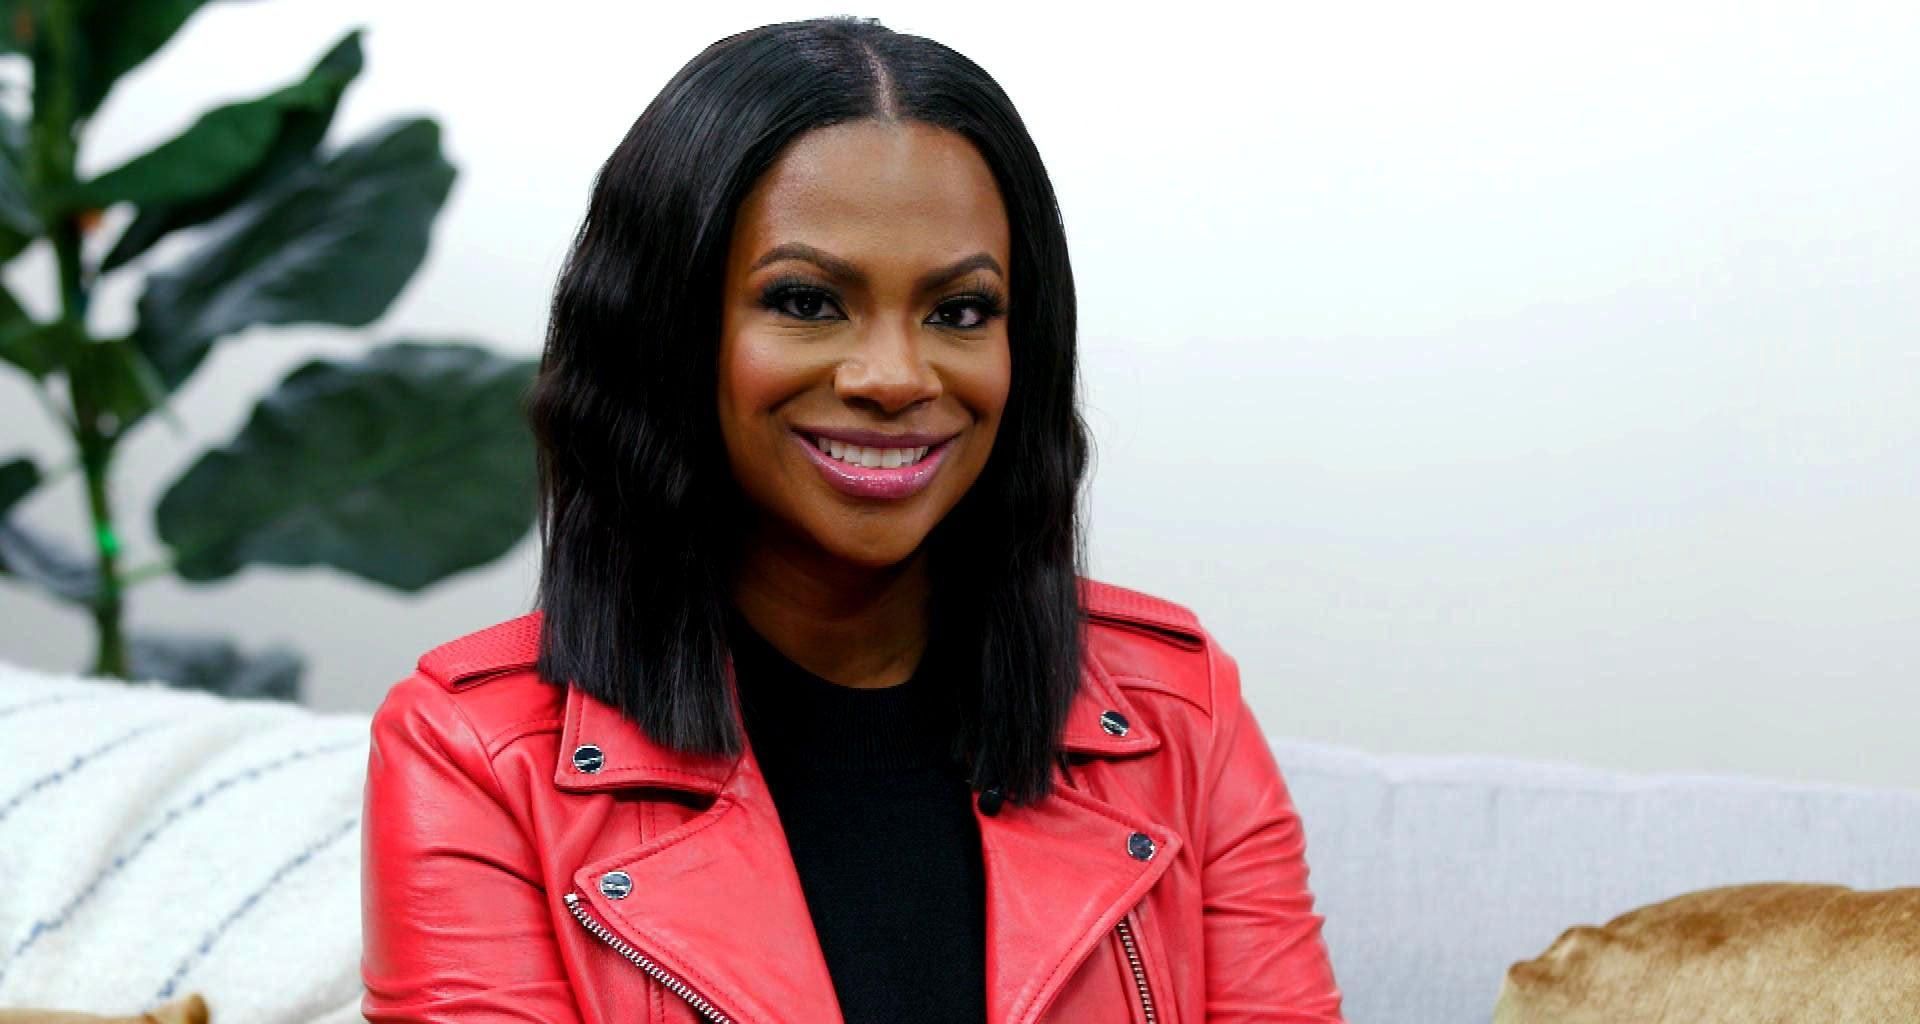 Kandi Burruss Is Excited For The Premiere Of 'The Chi' New Season - Check Out Her Character, Roselyn